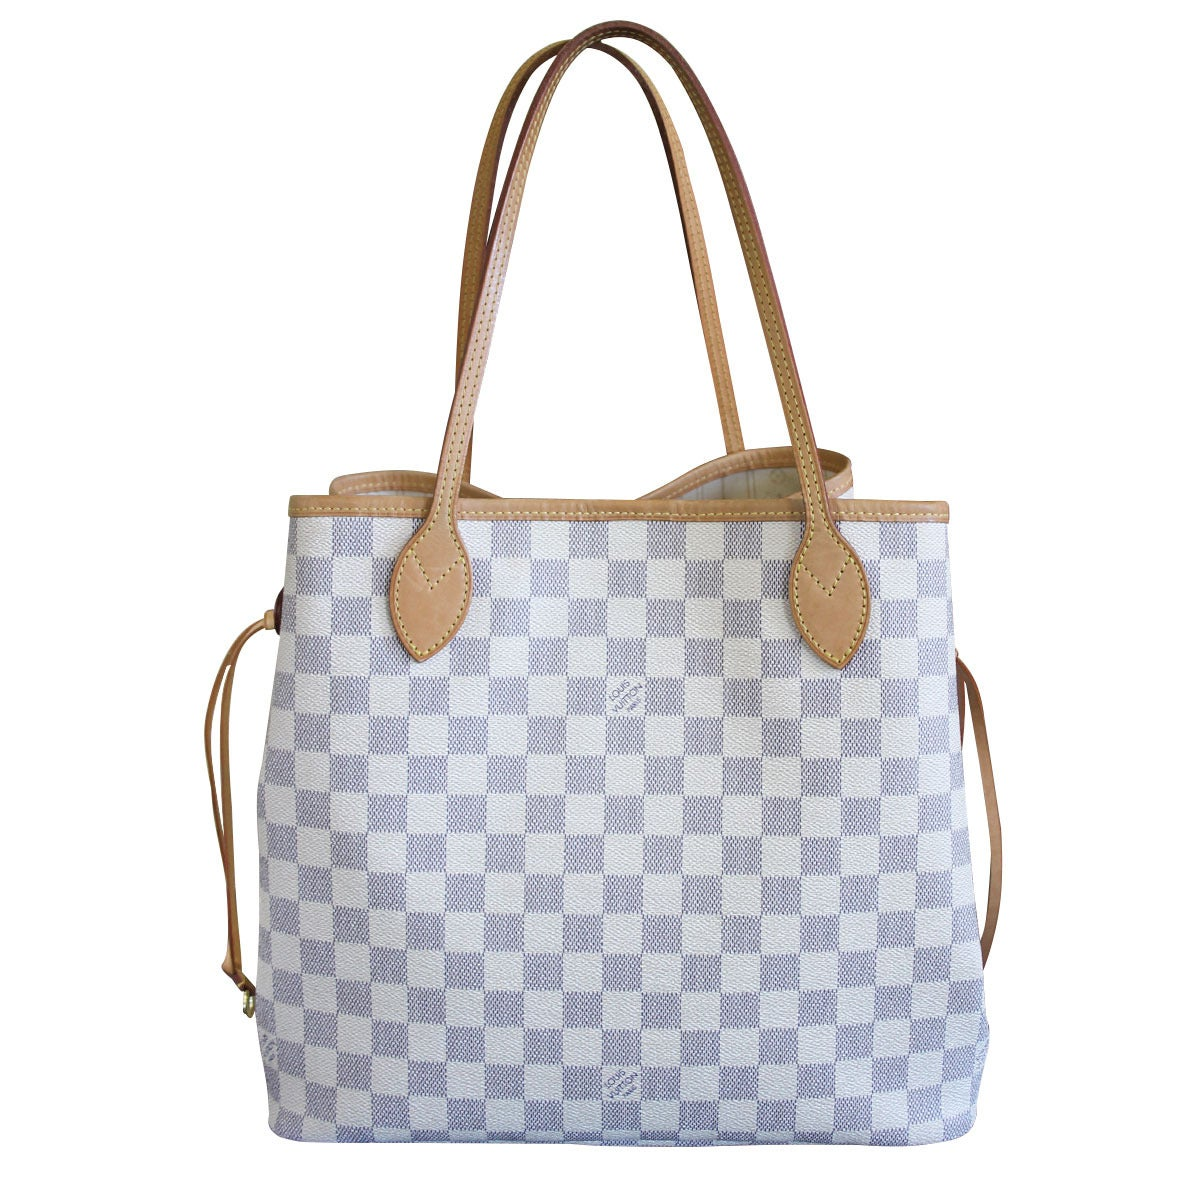 Louis Vuitton Neverfull MM Damier Azur Canvas Handbag Tote 2